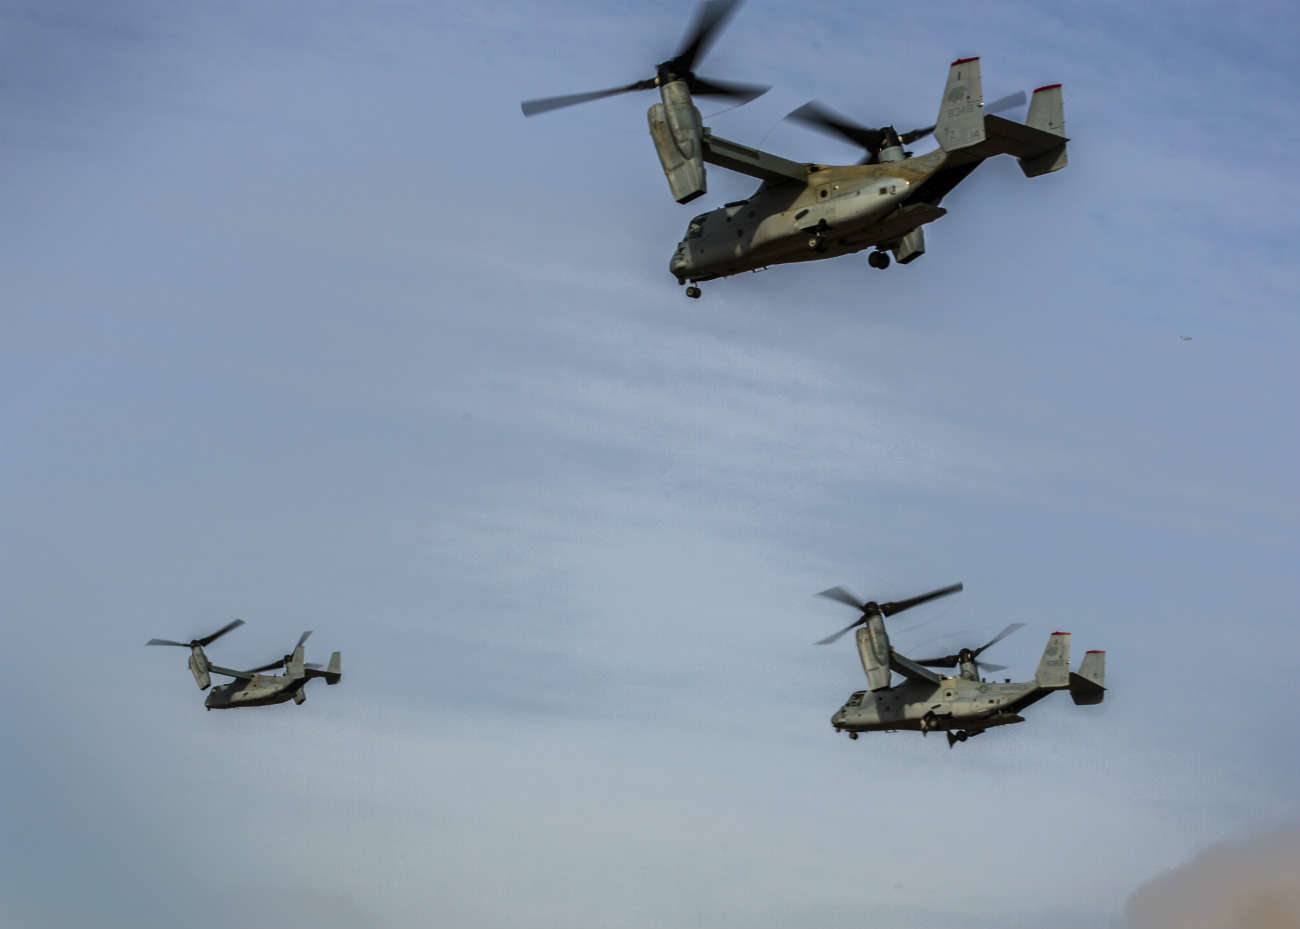 Group V-22 Osprey